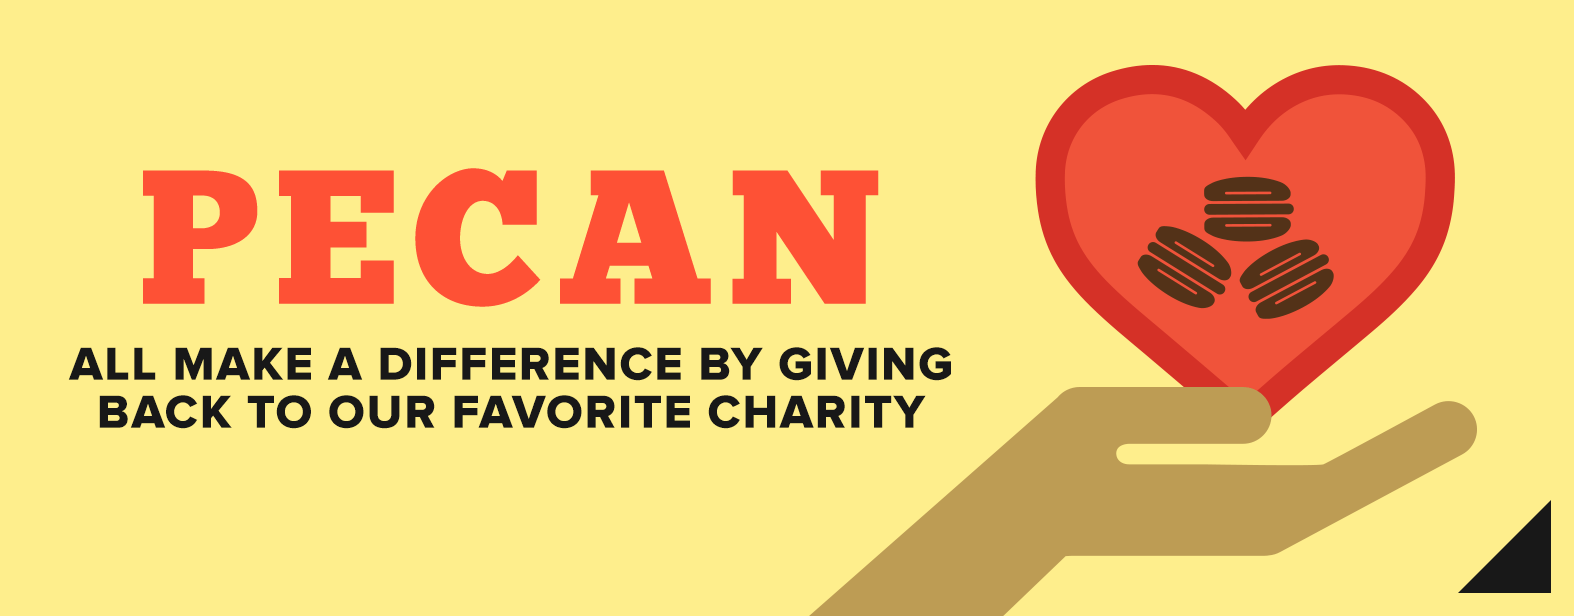 Pecan all make a difference by giving back to our favorite charity.